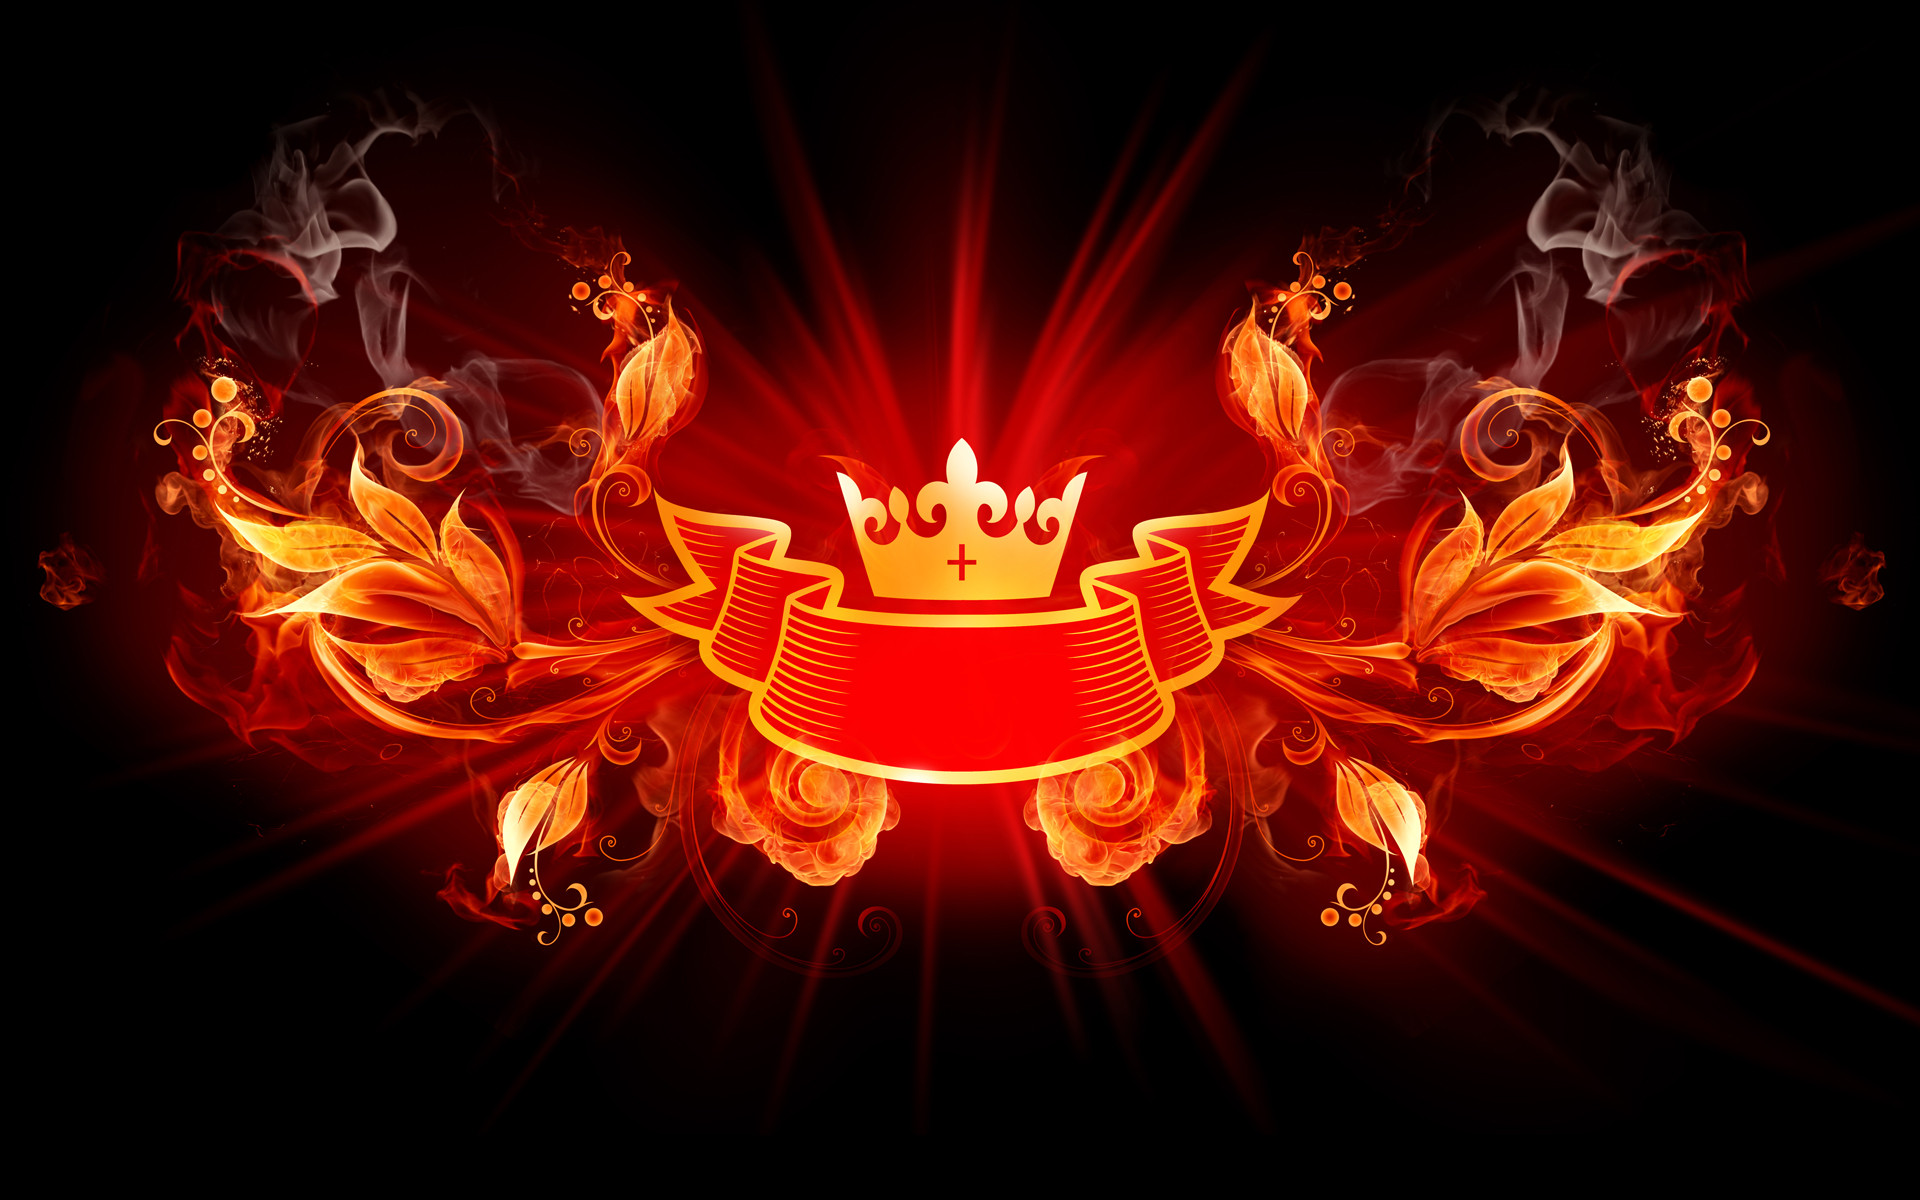 fiery crown is a great wallpaper for your computer desktop and laptop 1920x1200